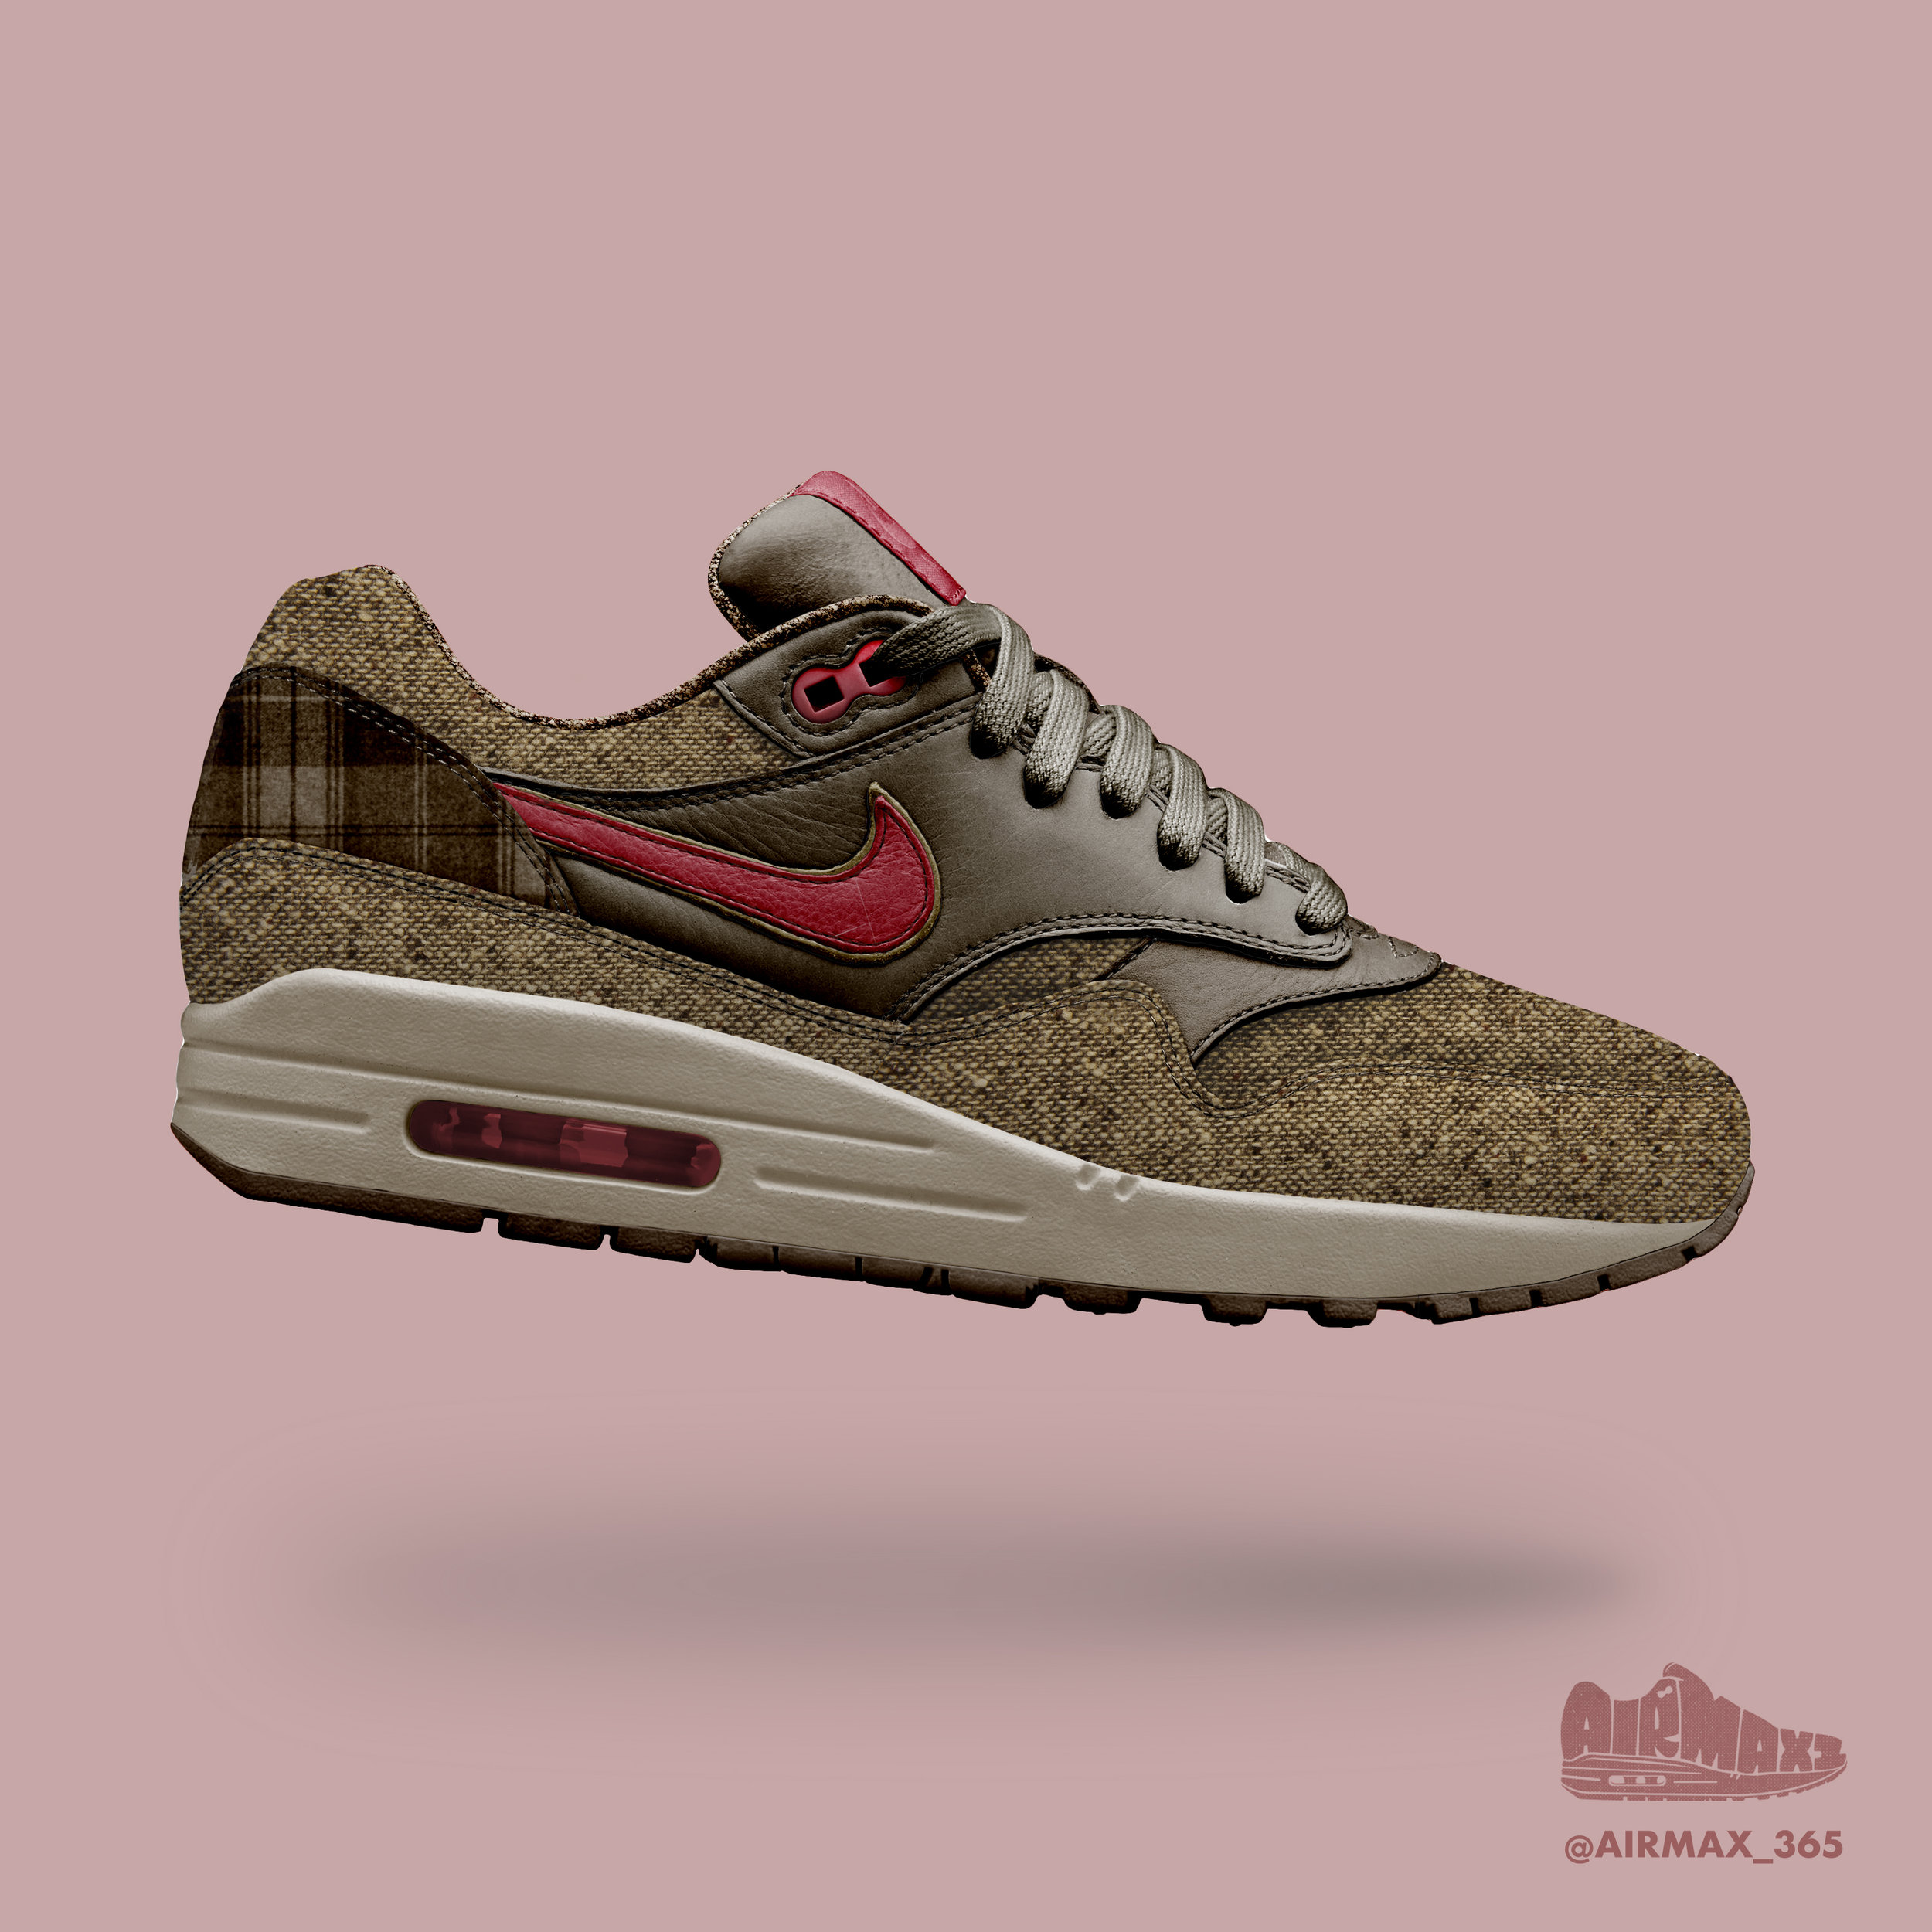 Day 185: Air Max 1 Brown Twill